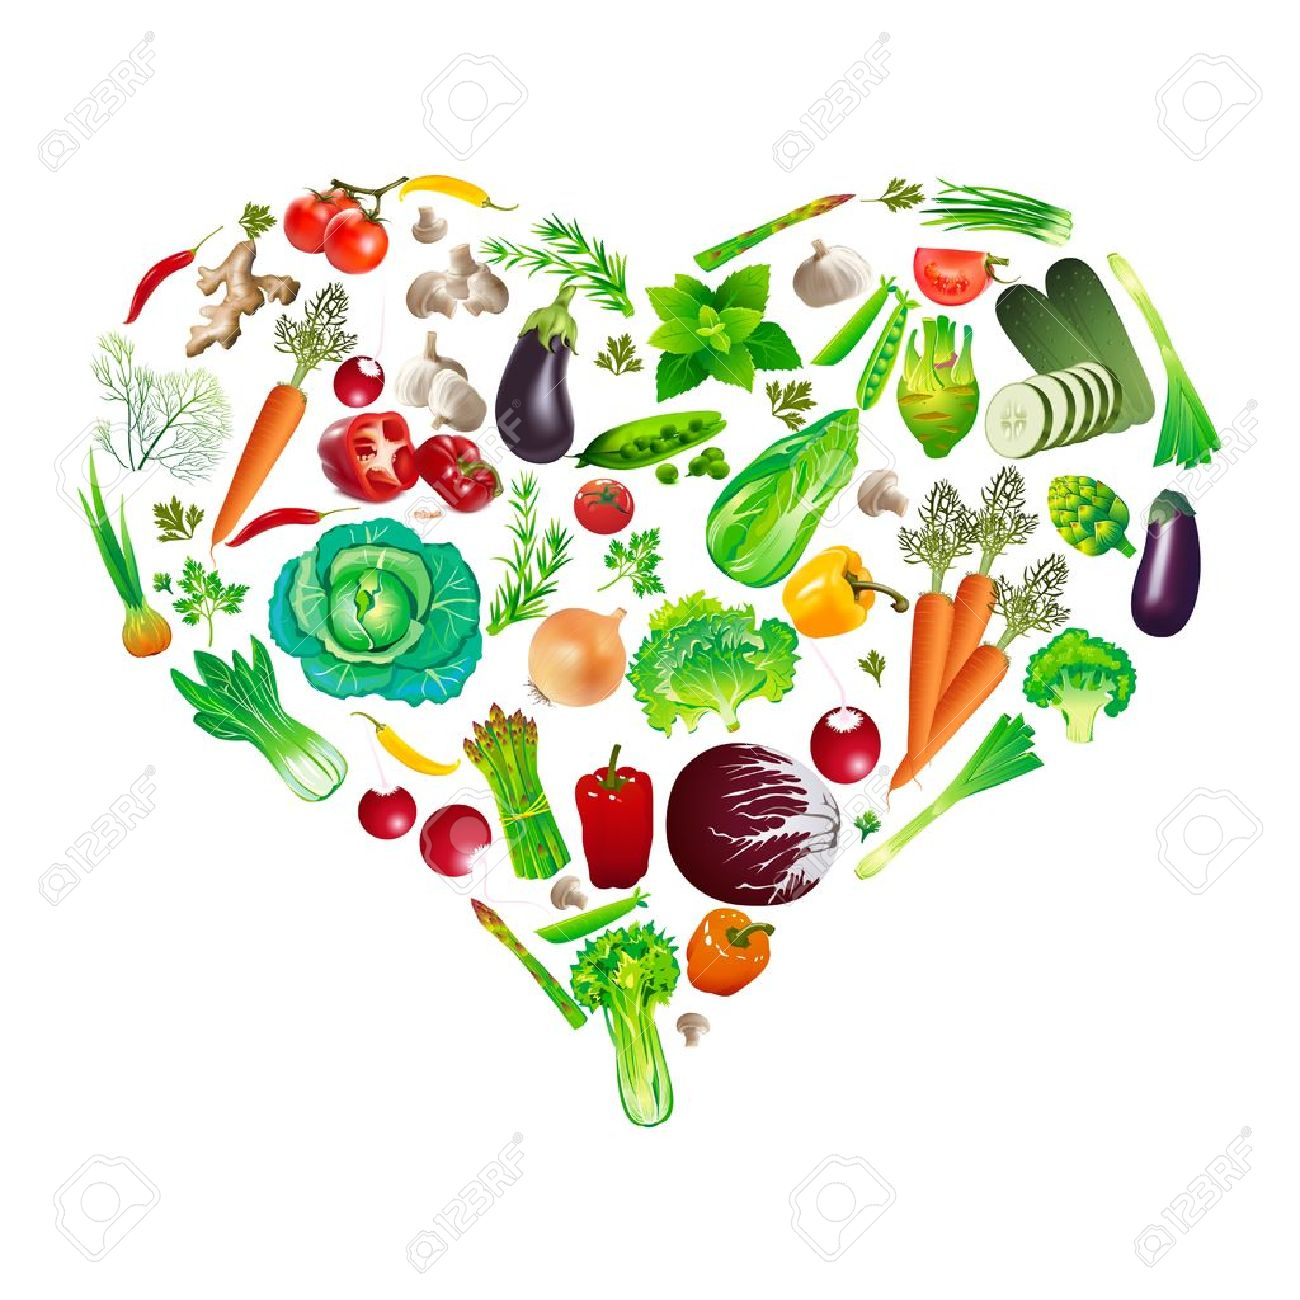 heart shape by various vegetables - 16293239